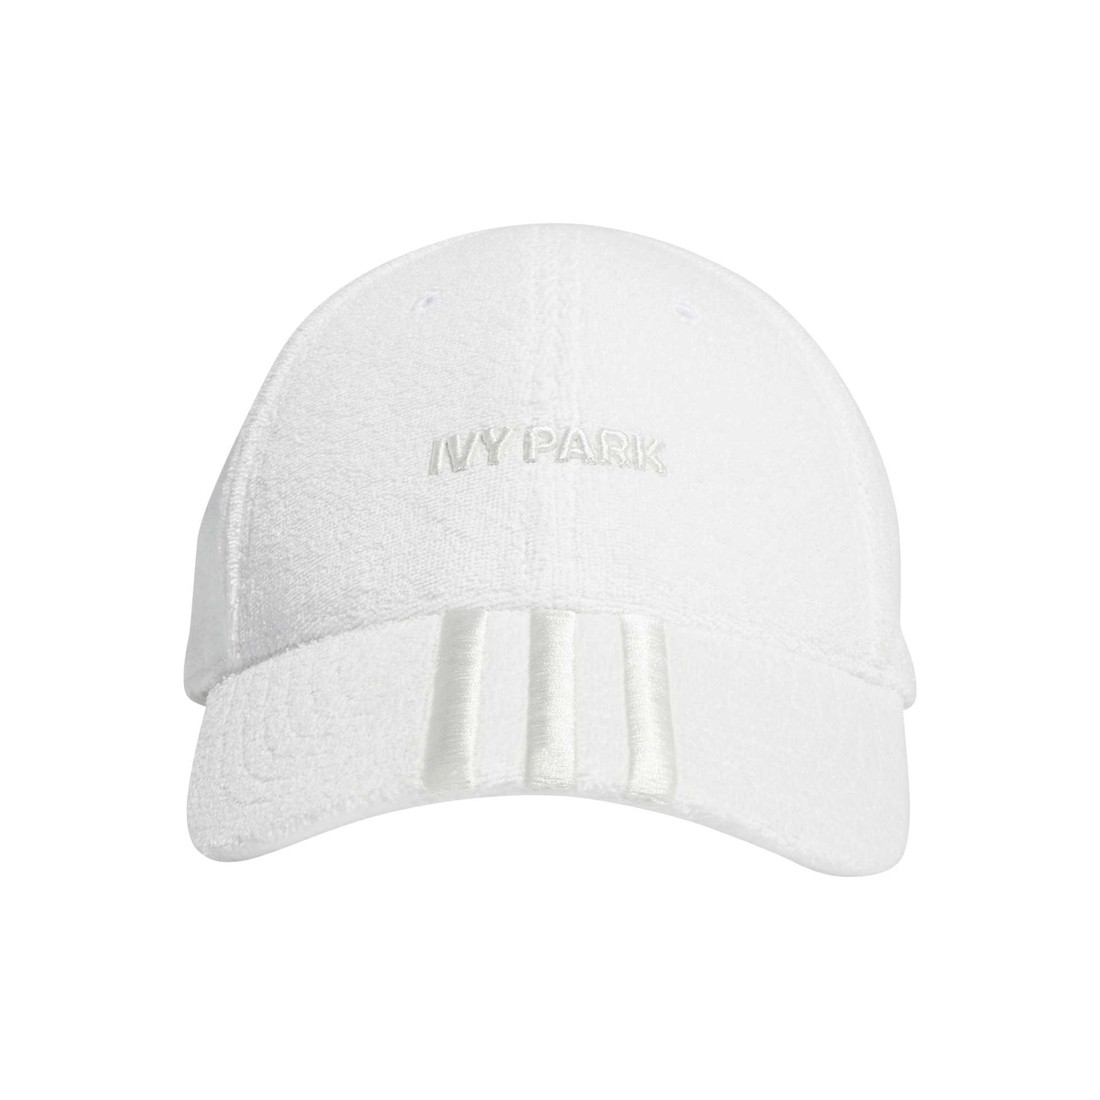 Adidas x Ivy Park Towel Terry Backless Cap (white)